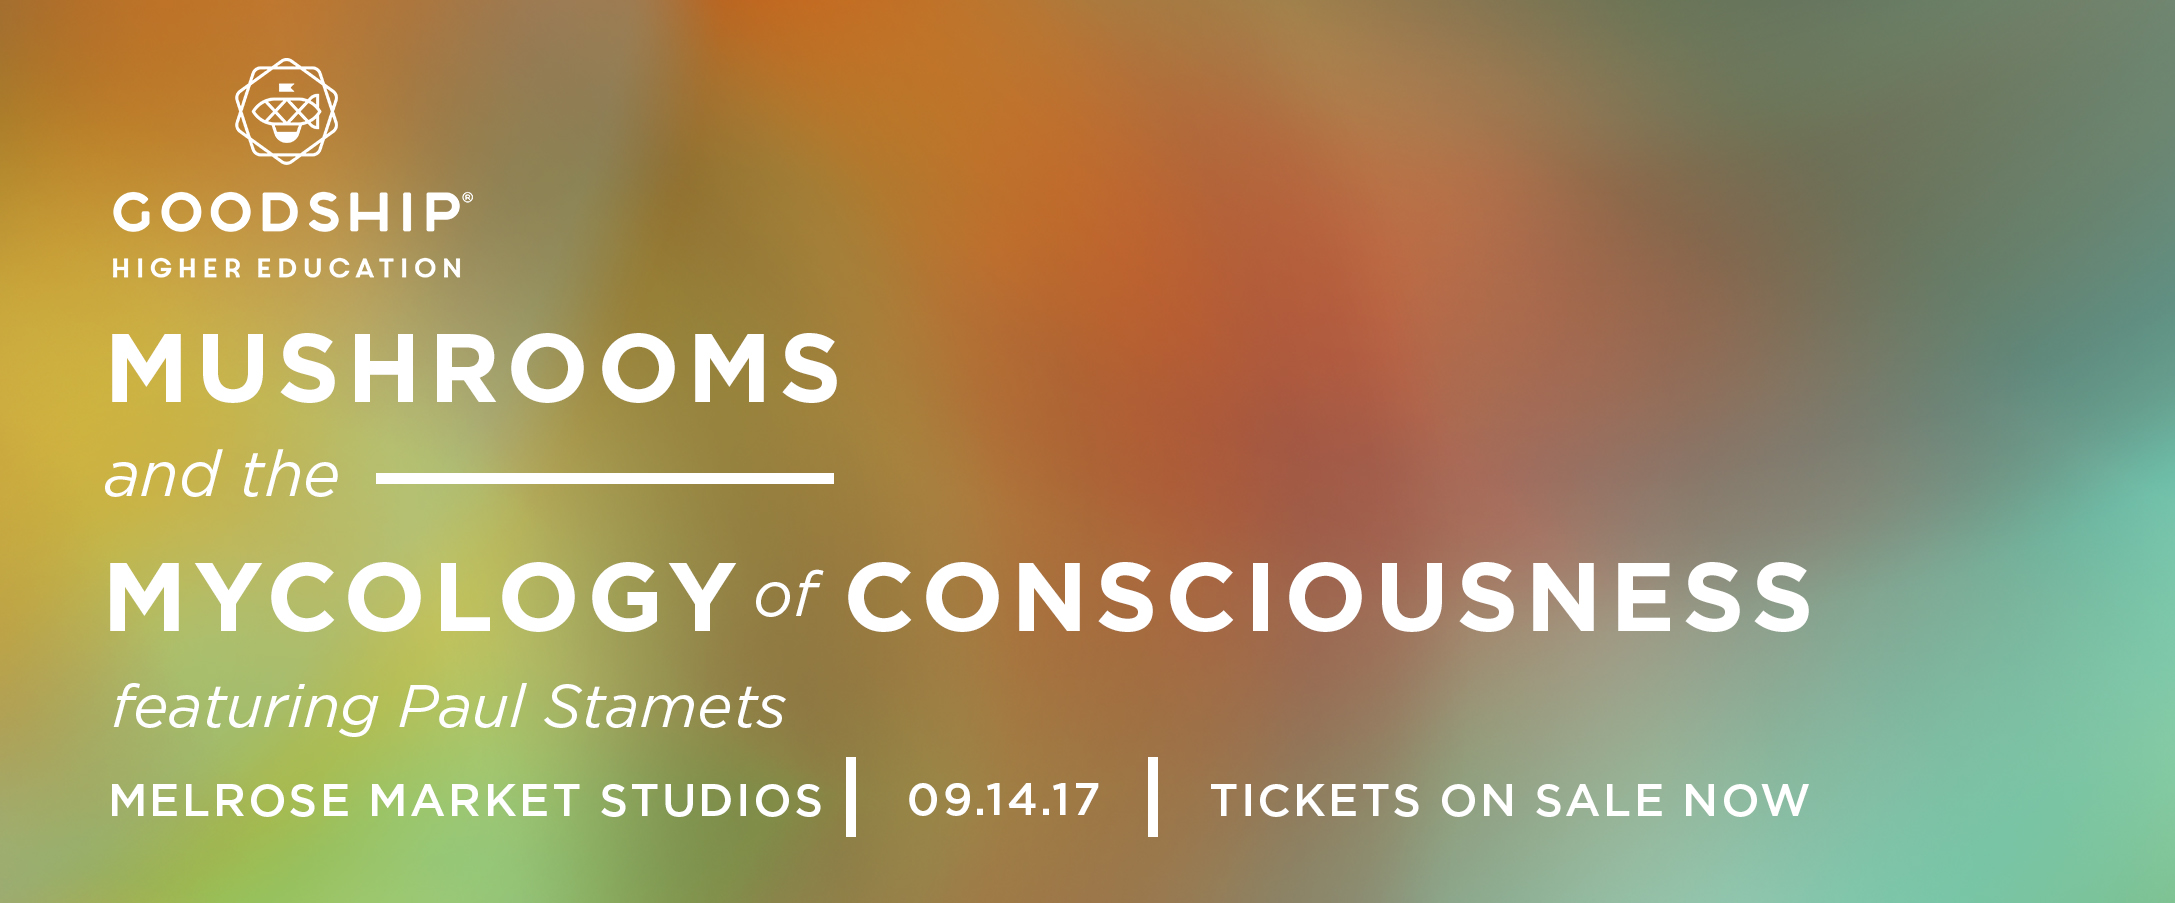 Goodship Higher Education: Mushrooms and the Mycology of Consciousness  Tickets | Melrose Market Studios | Seattle, WA | Thu, Sep 14, 2017 from 7pm  -